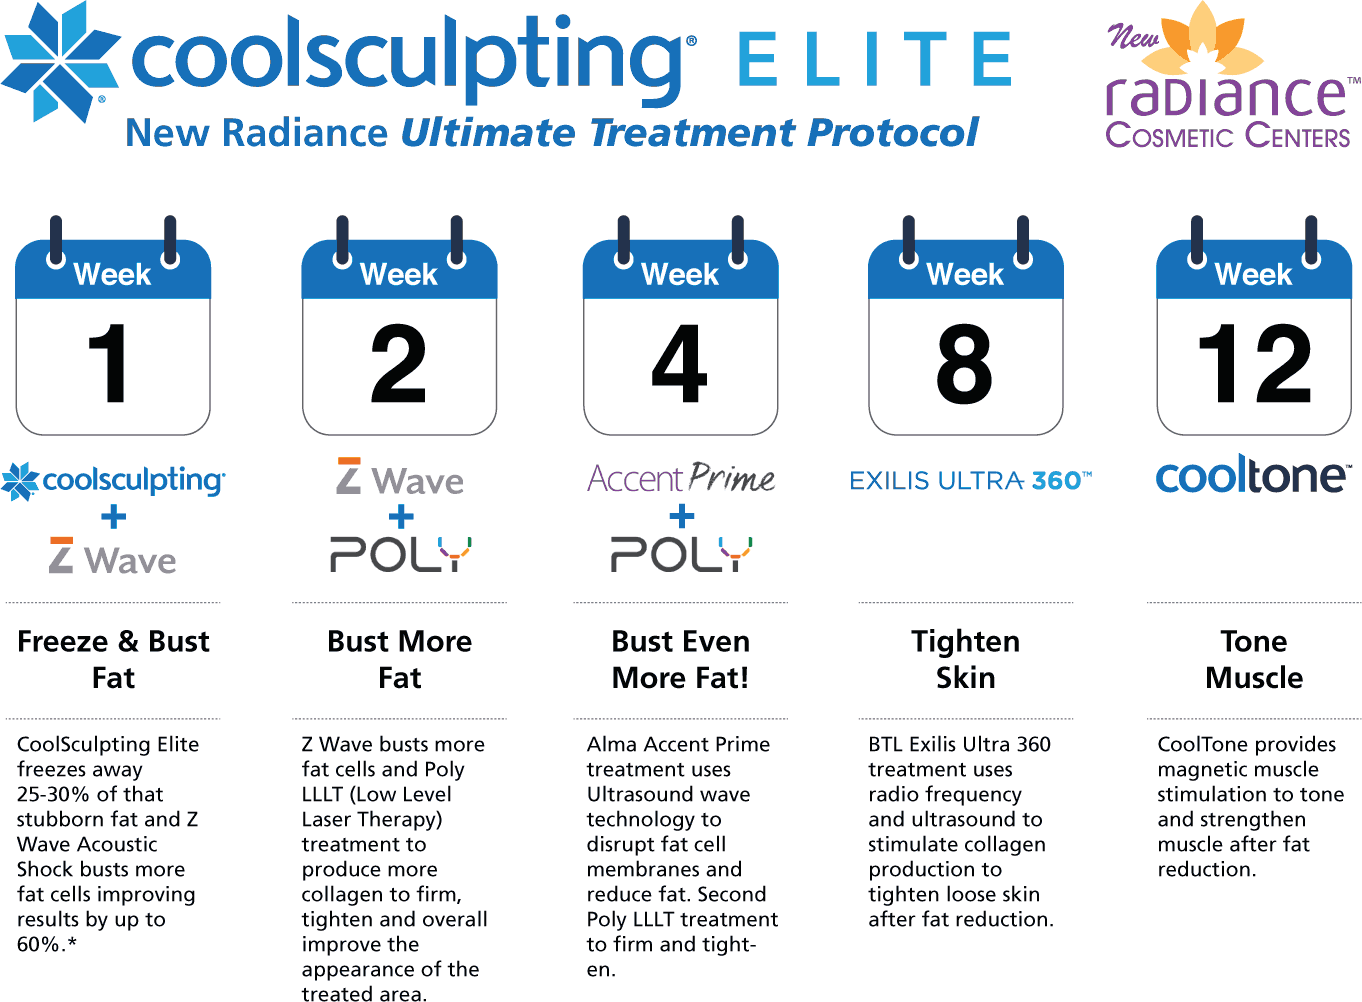 CoolSculpting Elite New Radiance Ultimate Treatment Protocol